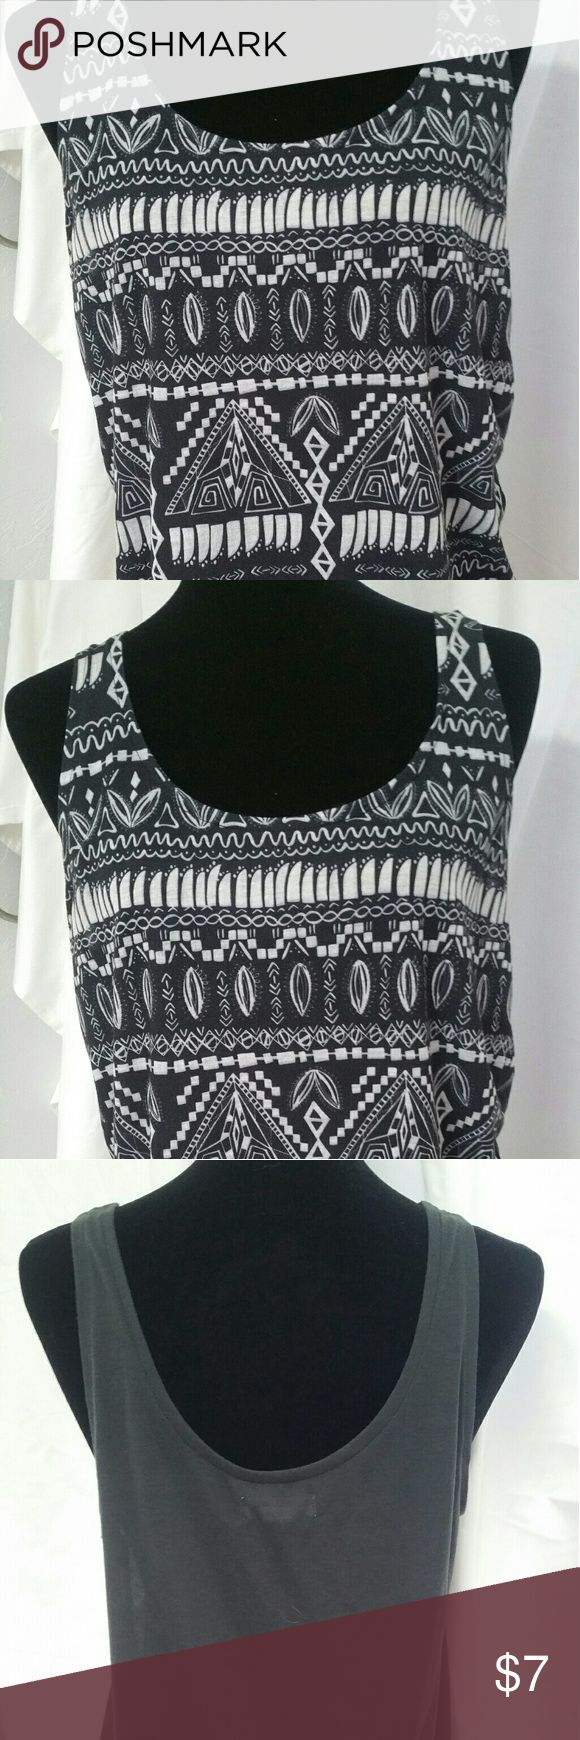 Element Tank Top Tribal Print Black, Gray white 100% Polyester. Great for HOT summer days. Lightweight. Gently Used Condition Element Tops Tank Tops